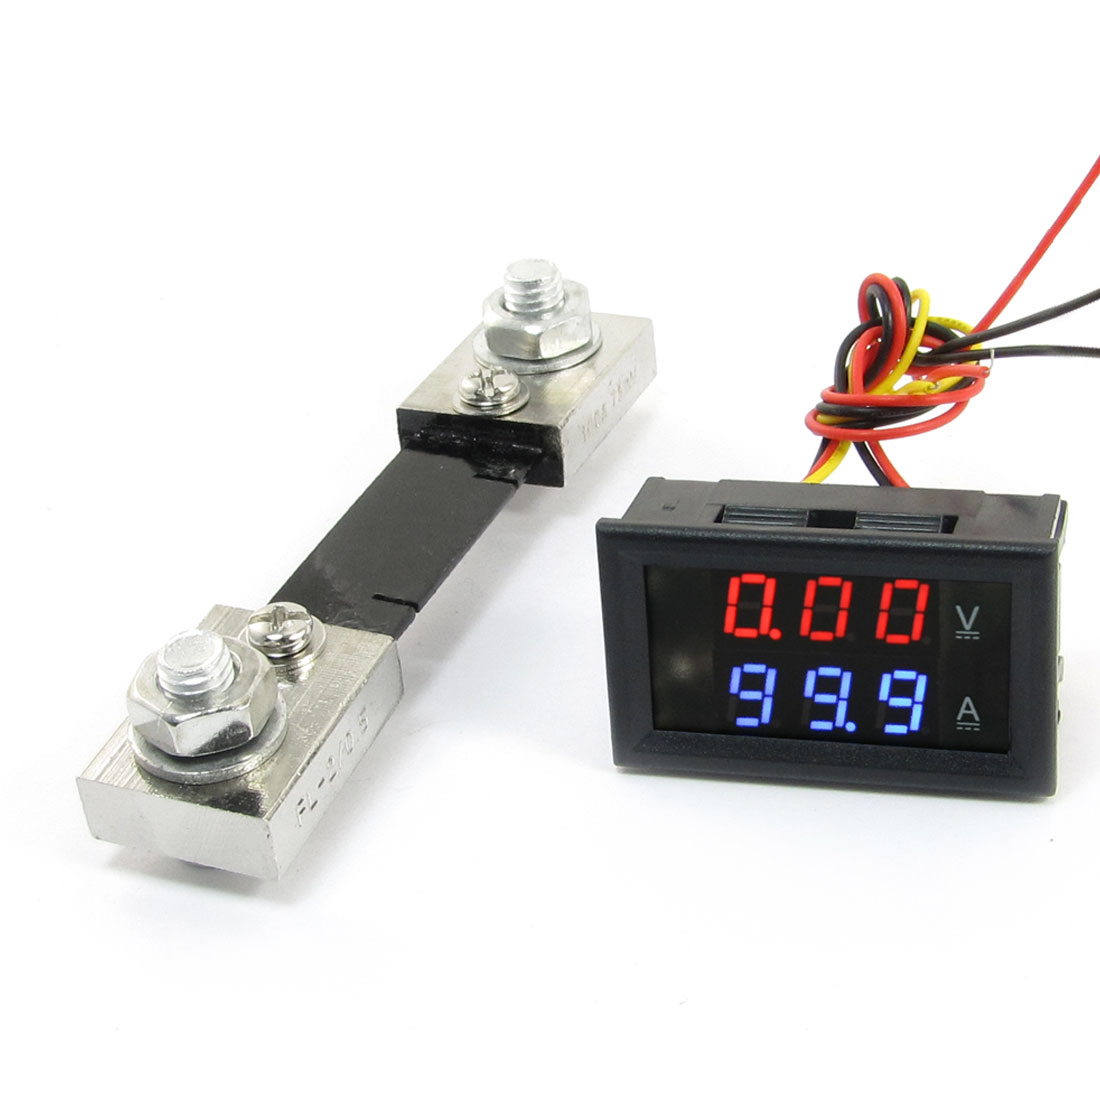 0-100V/100A Digital Dual LED Display DC Voltage Current Meter w Shunt